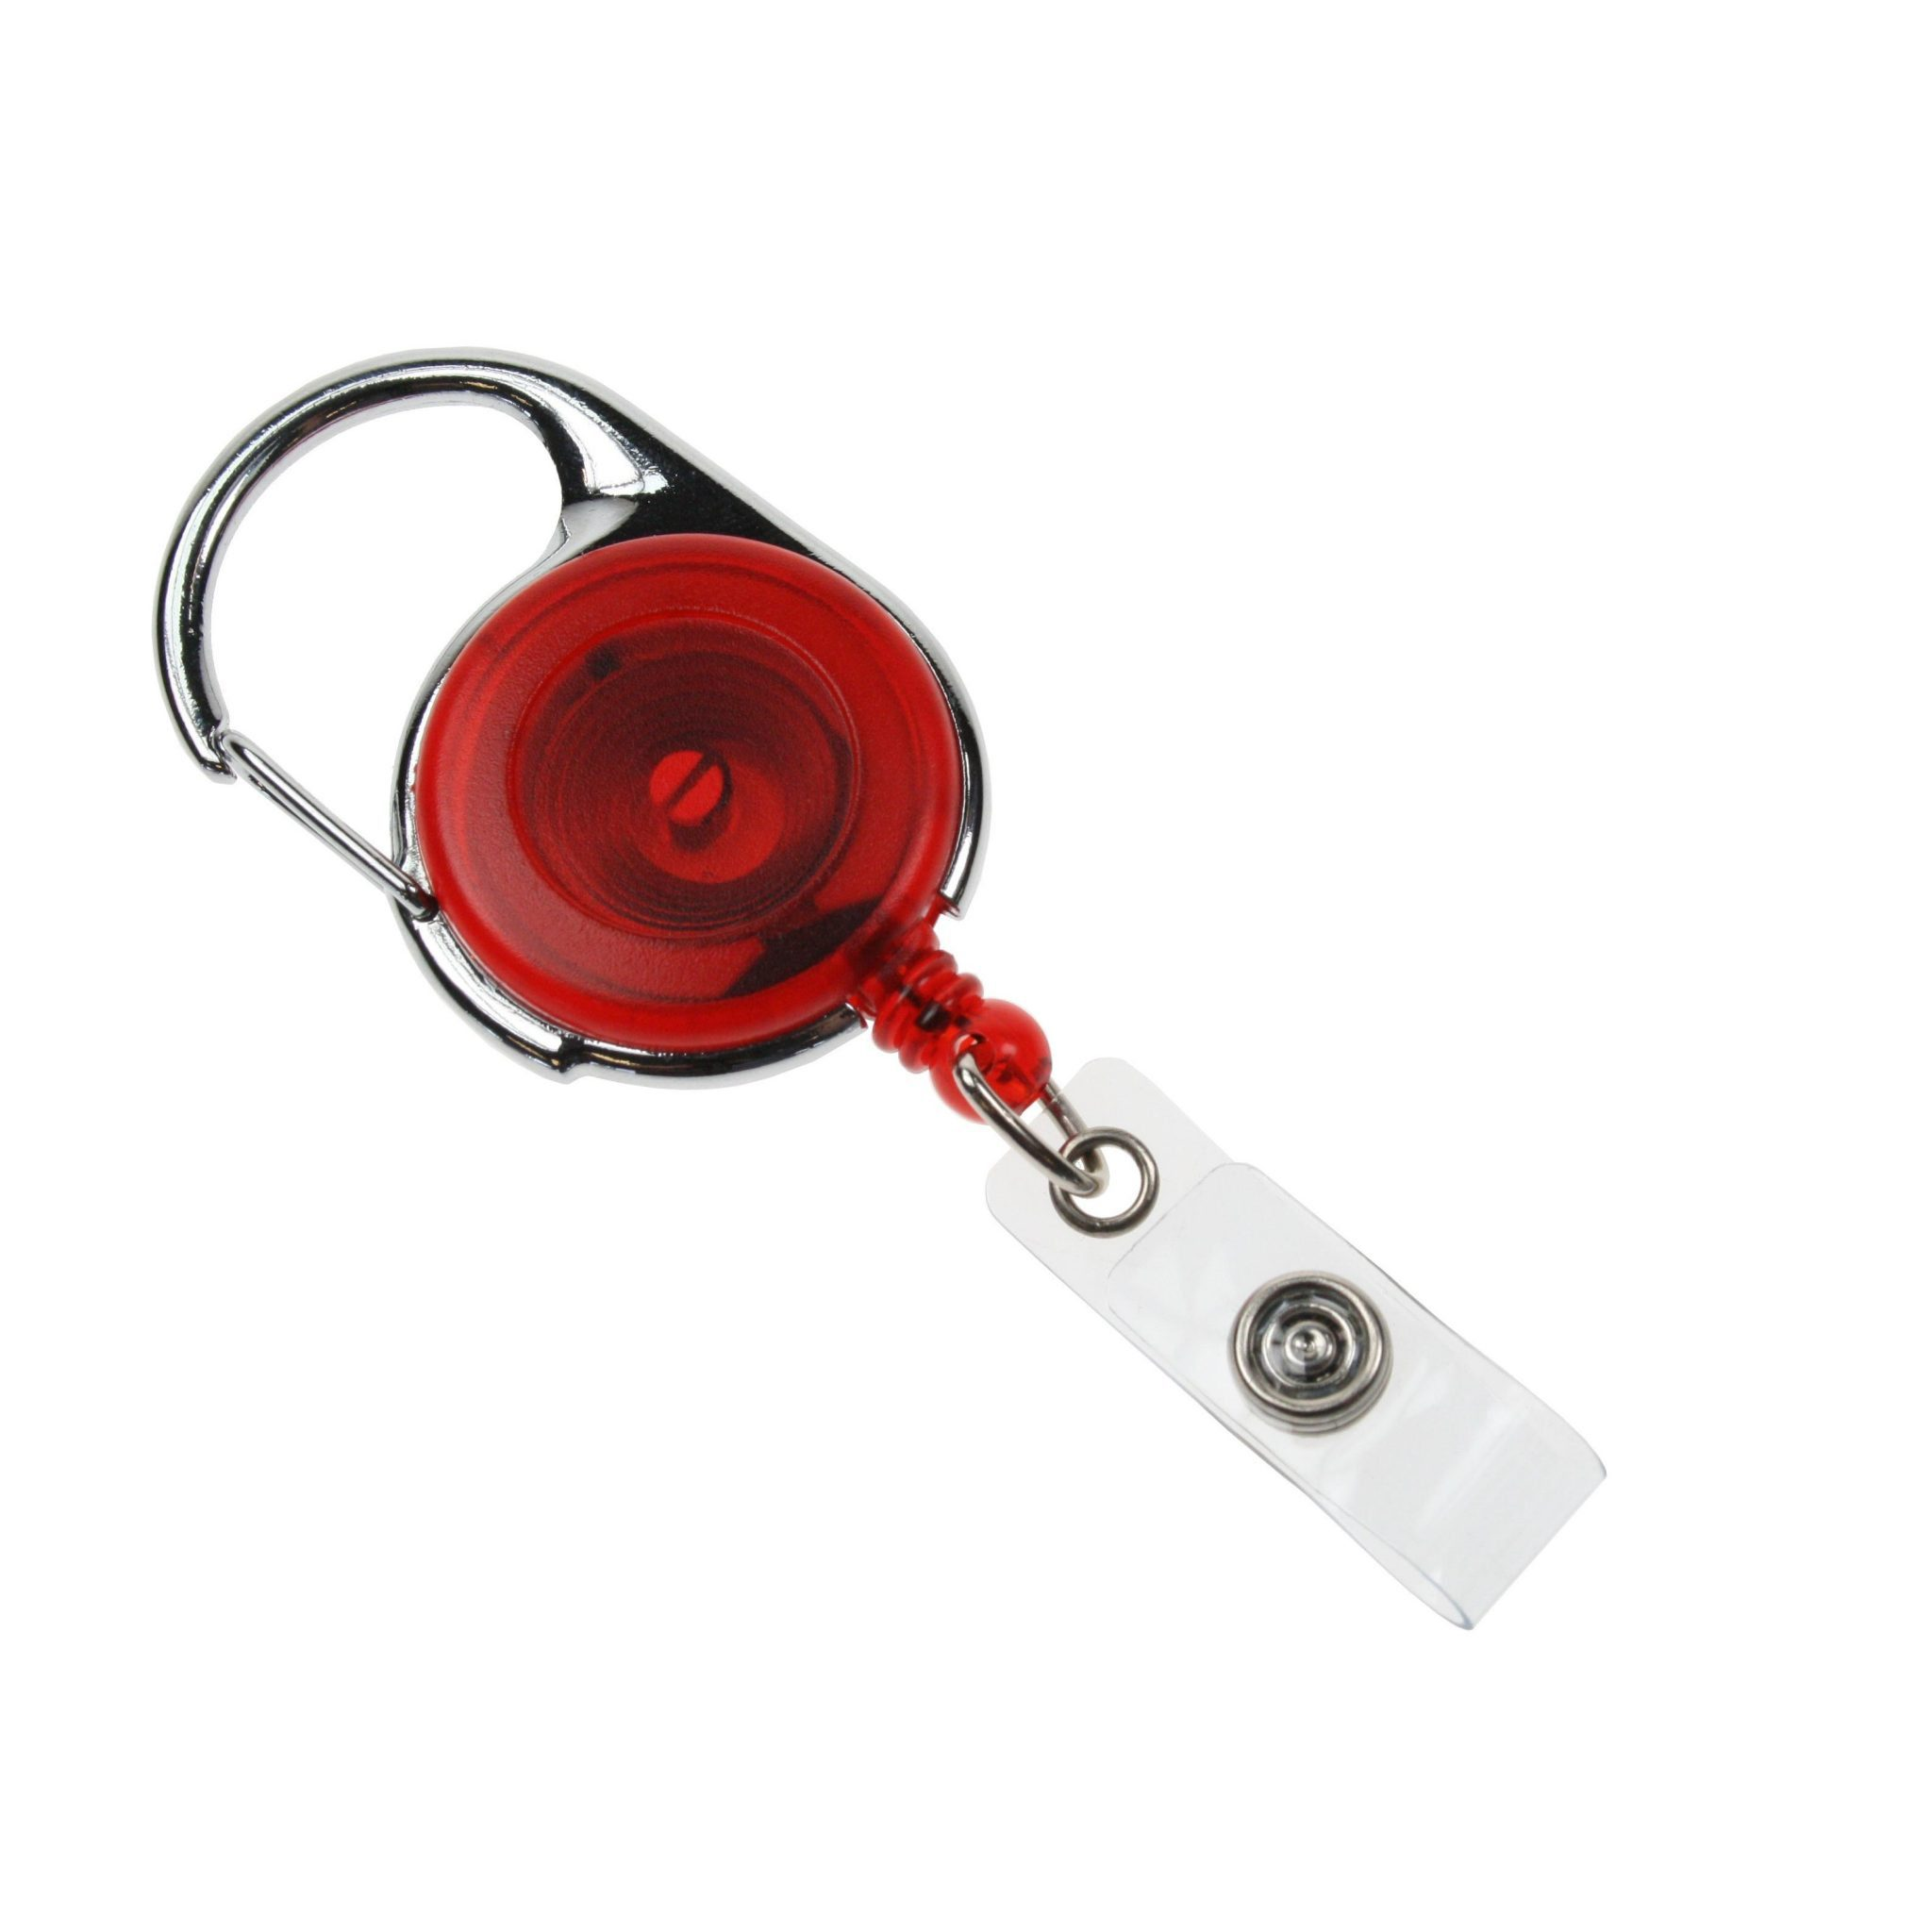 RED TRANSLUCENT CARABINEER CARD REEL